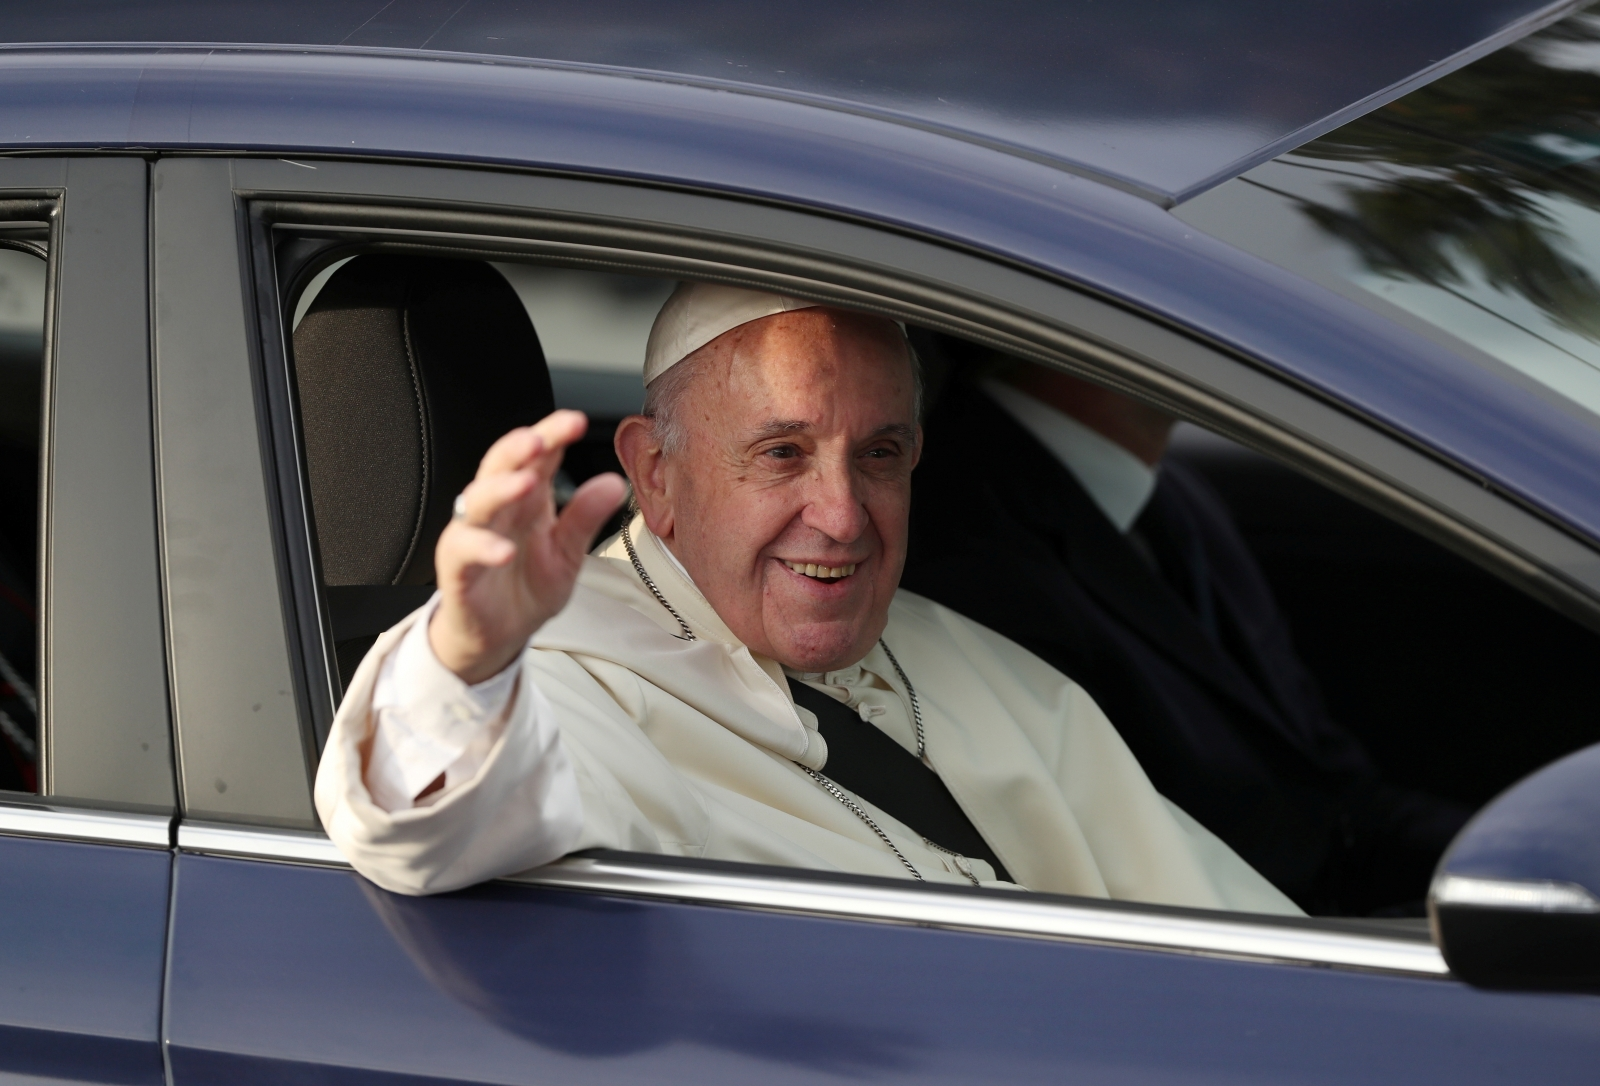 Pope Francis and nuclear disaster warning